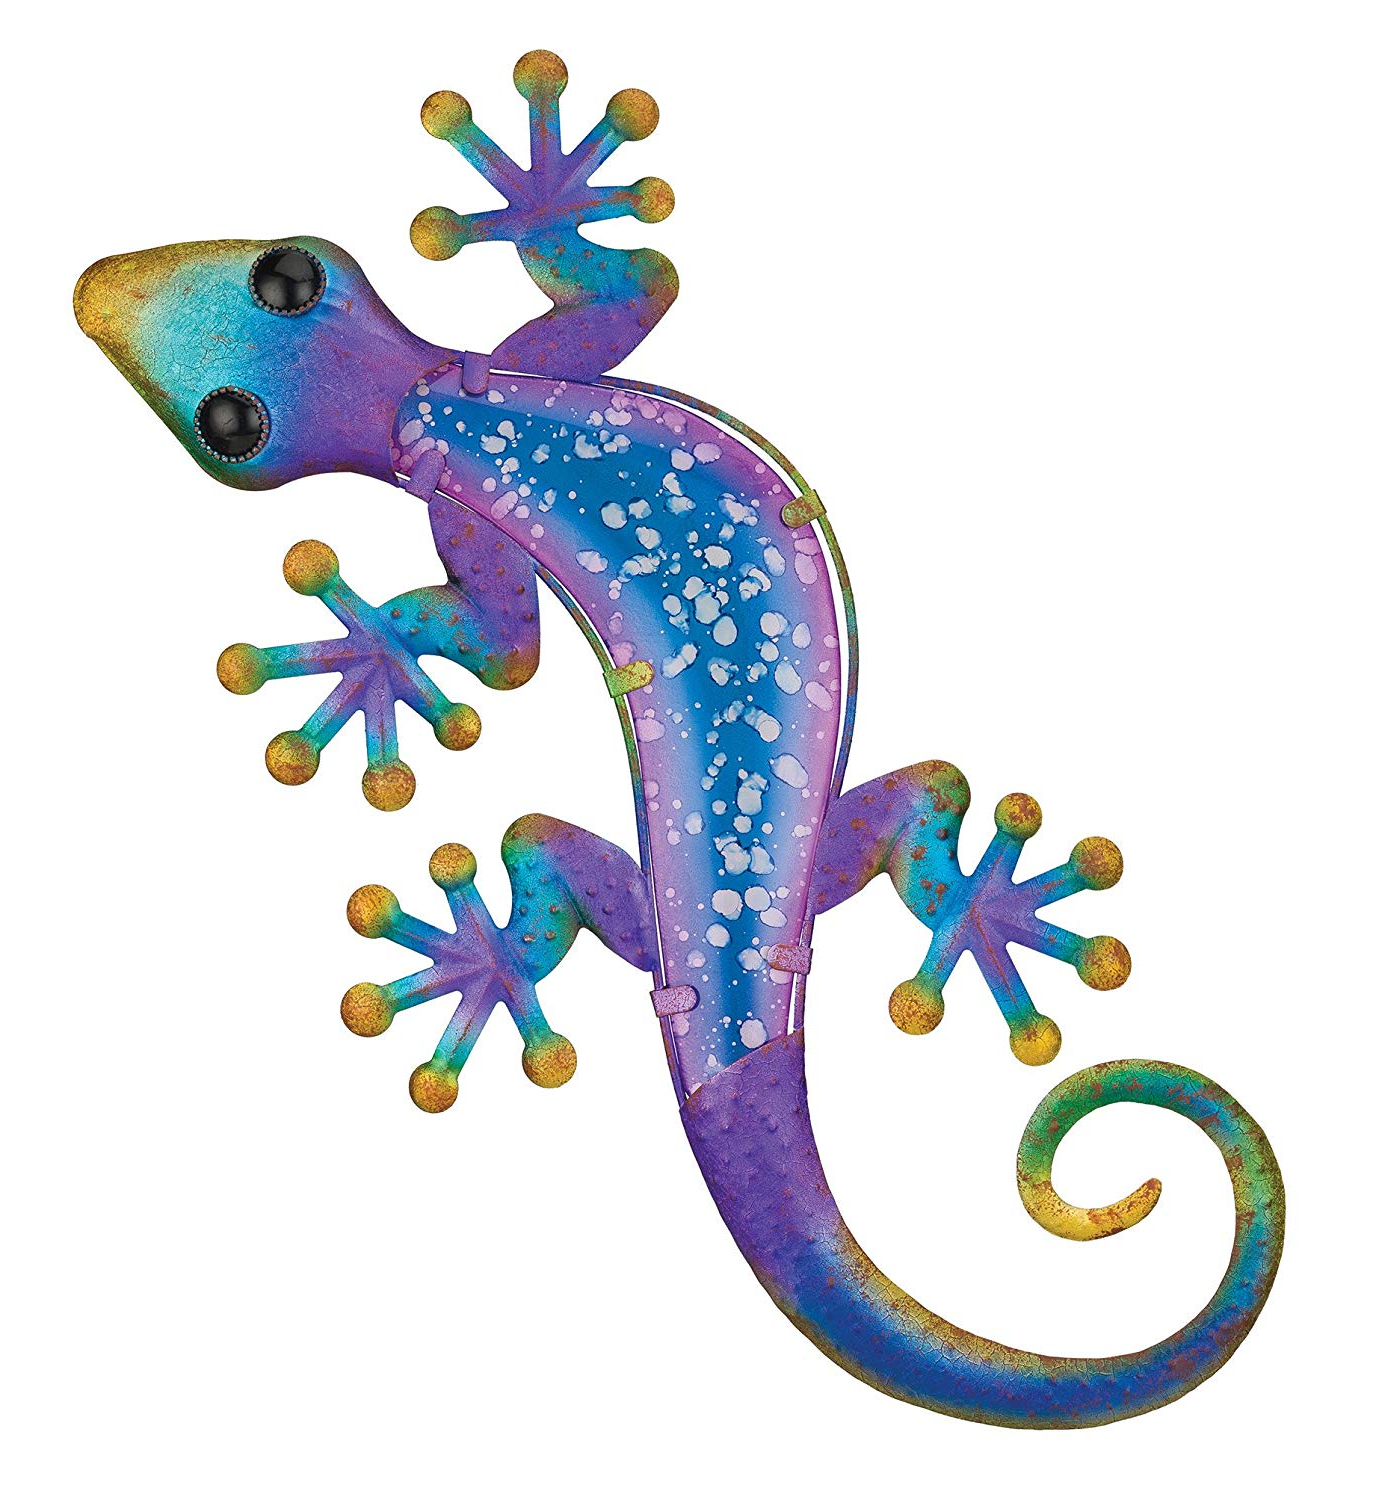 Most Recent Gecko Wall Decor Throughout Amazon: Regal Art & Gift 11349 Watercolor Gecko Wall Decor, (View 3 of 20)